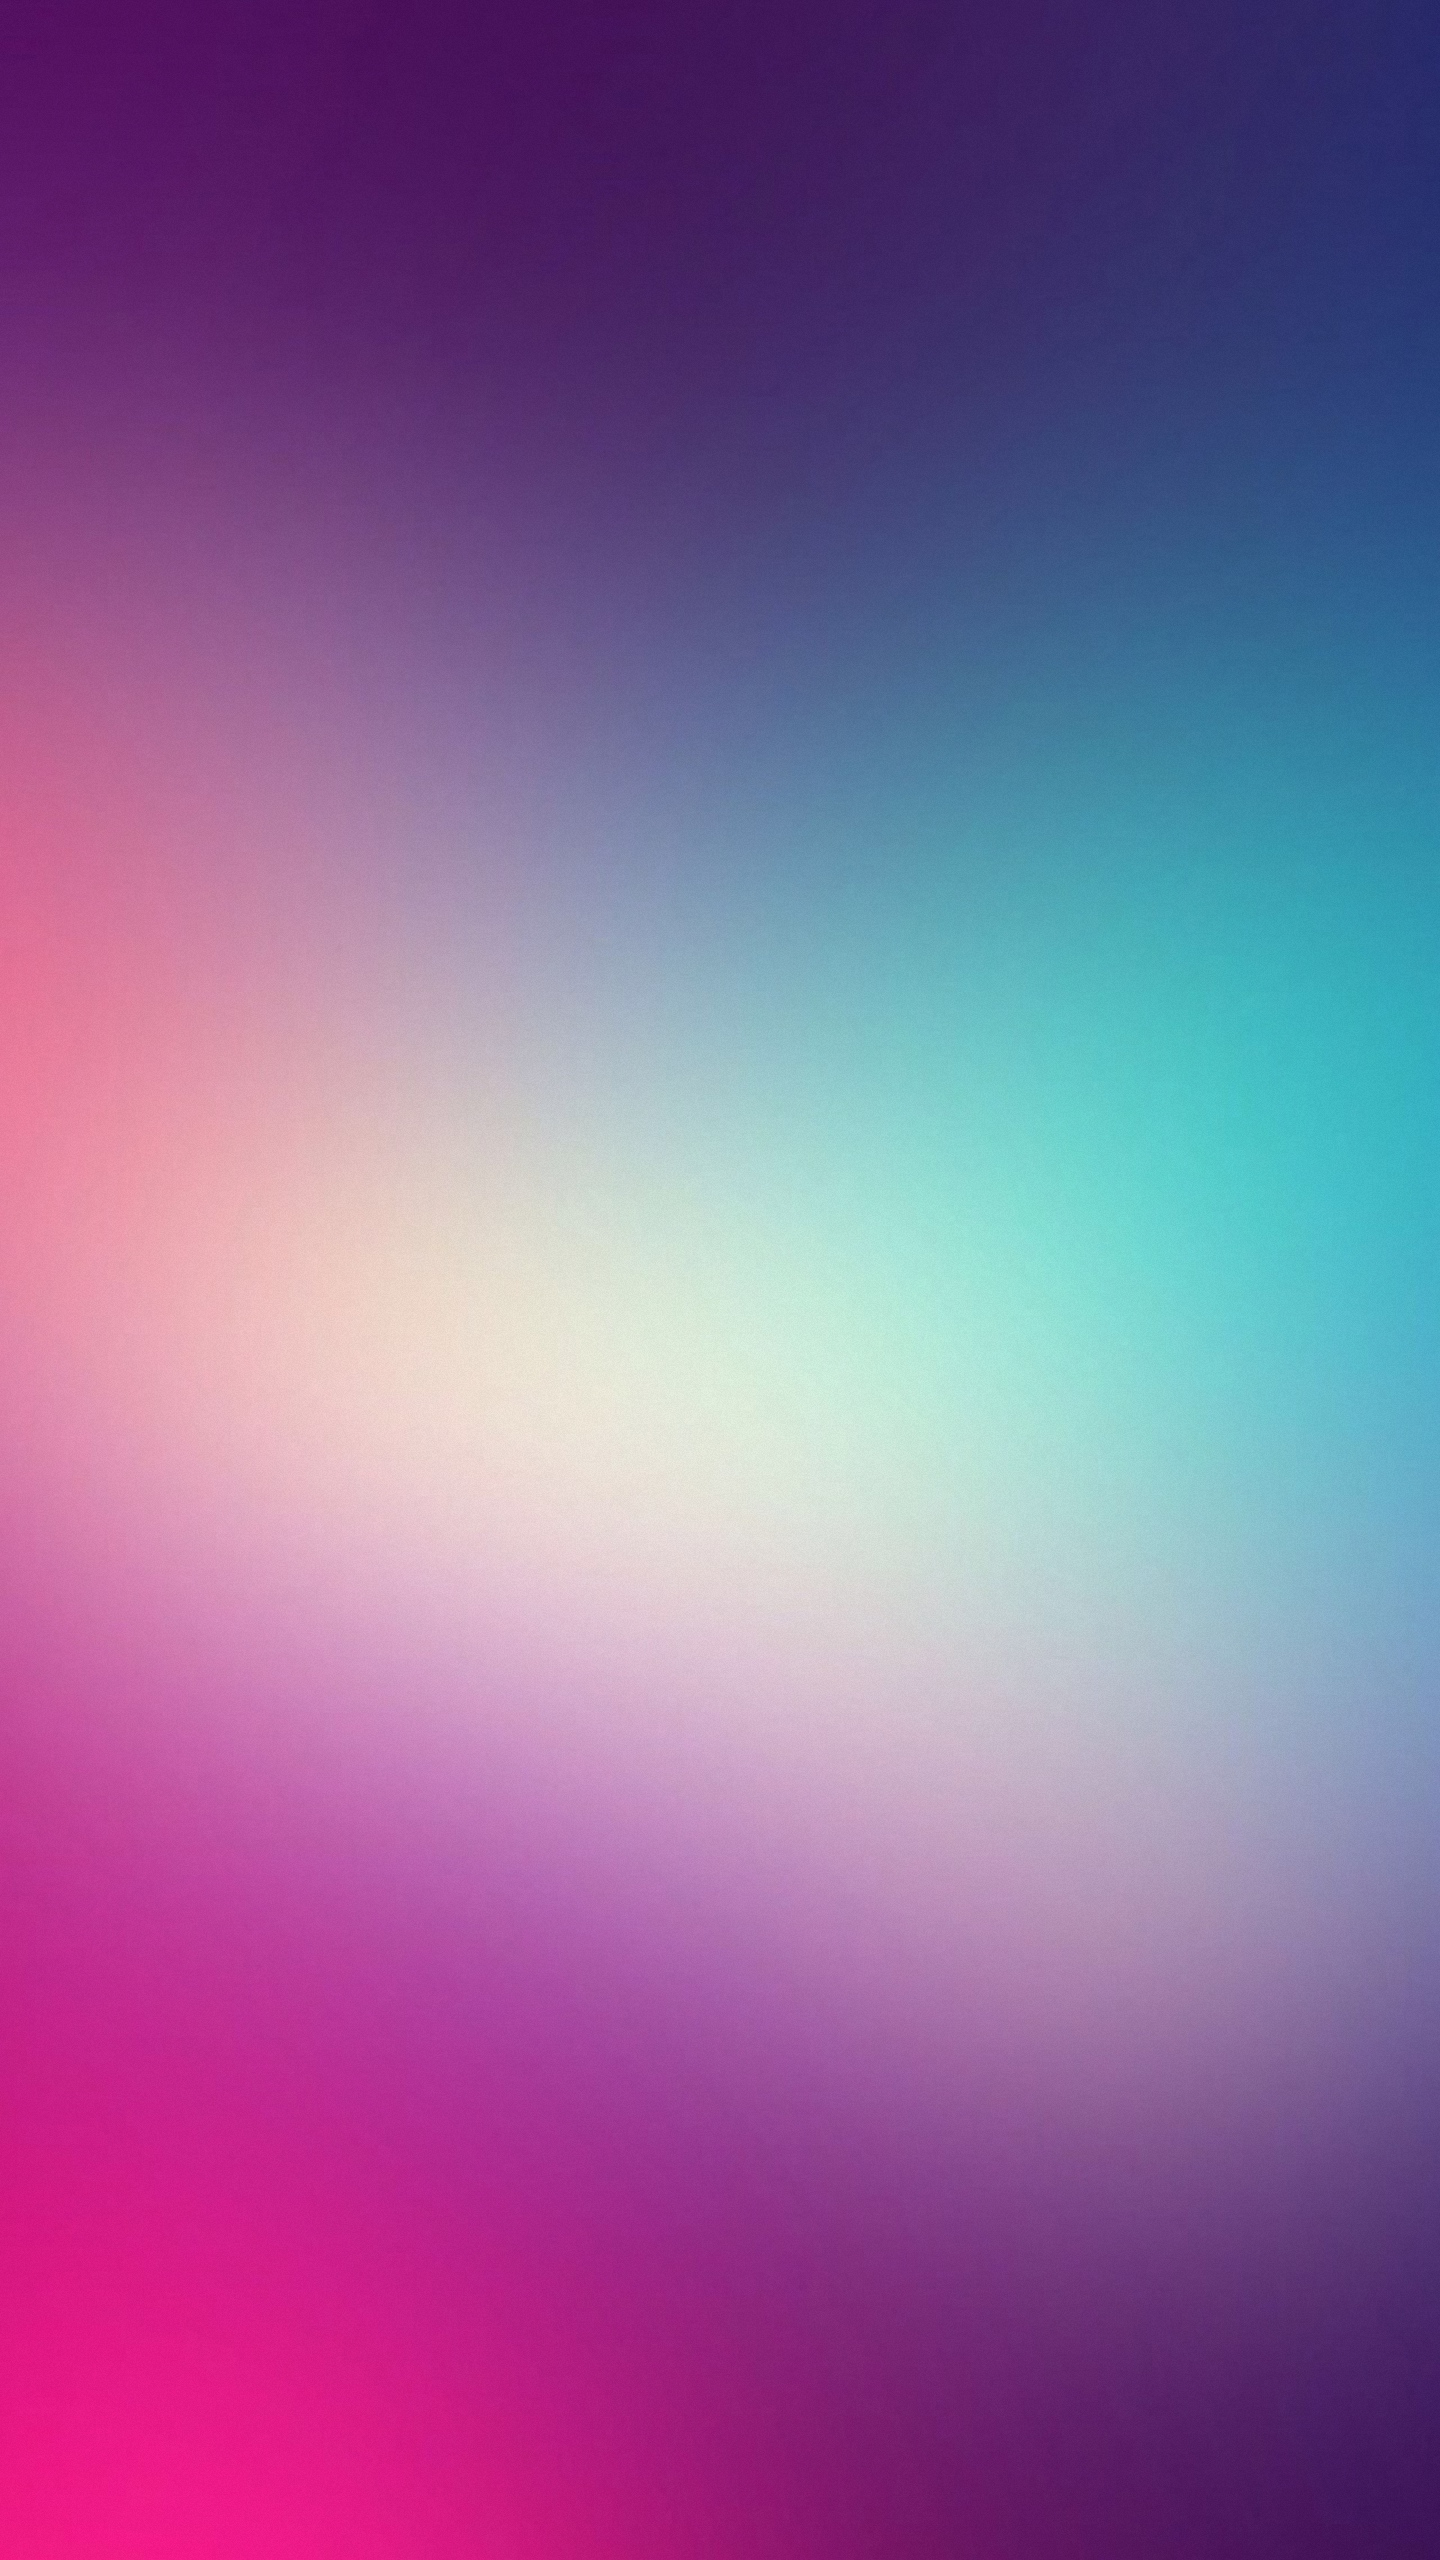 simple iphone wallpaper hd iphone 6s wallpaper wallpapersafari 12977